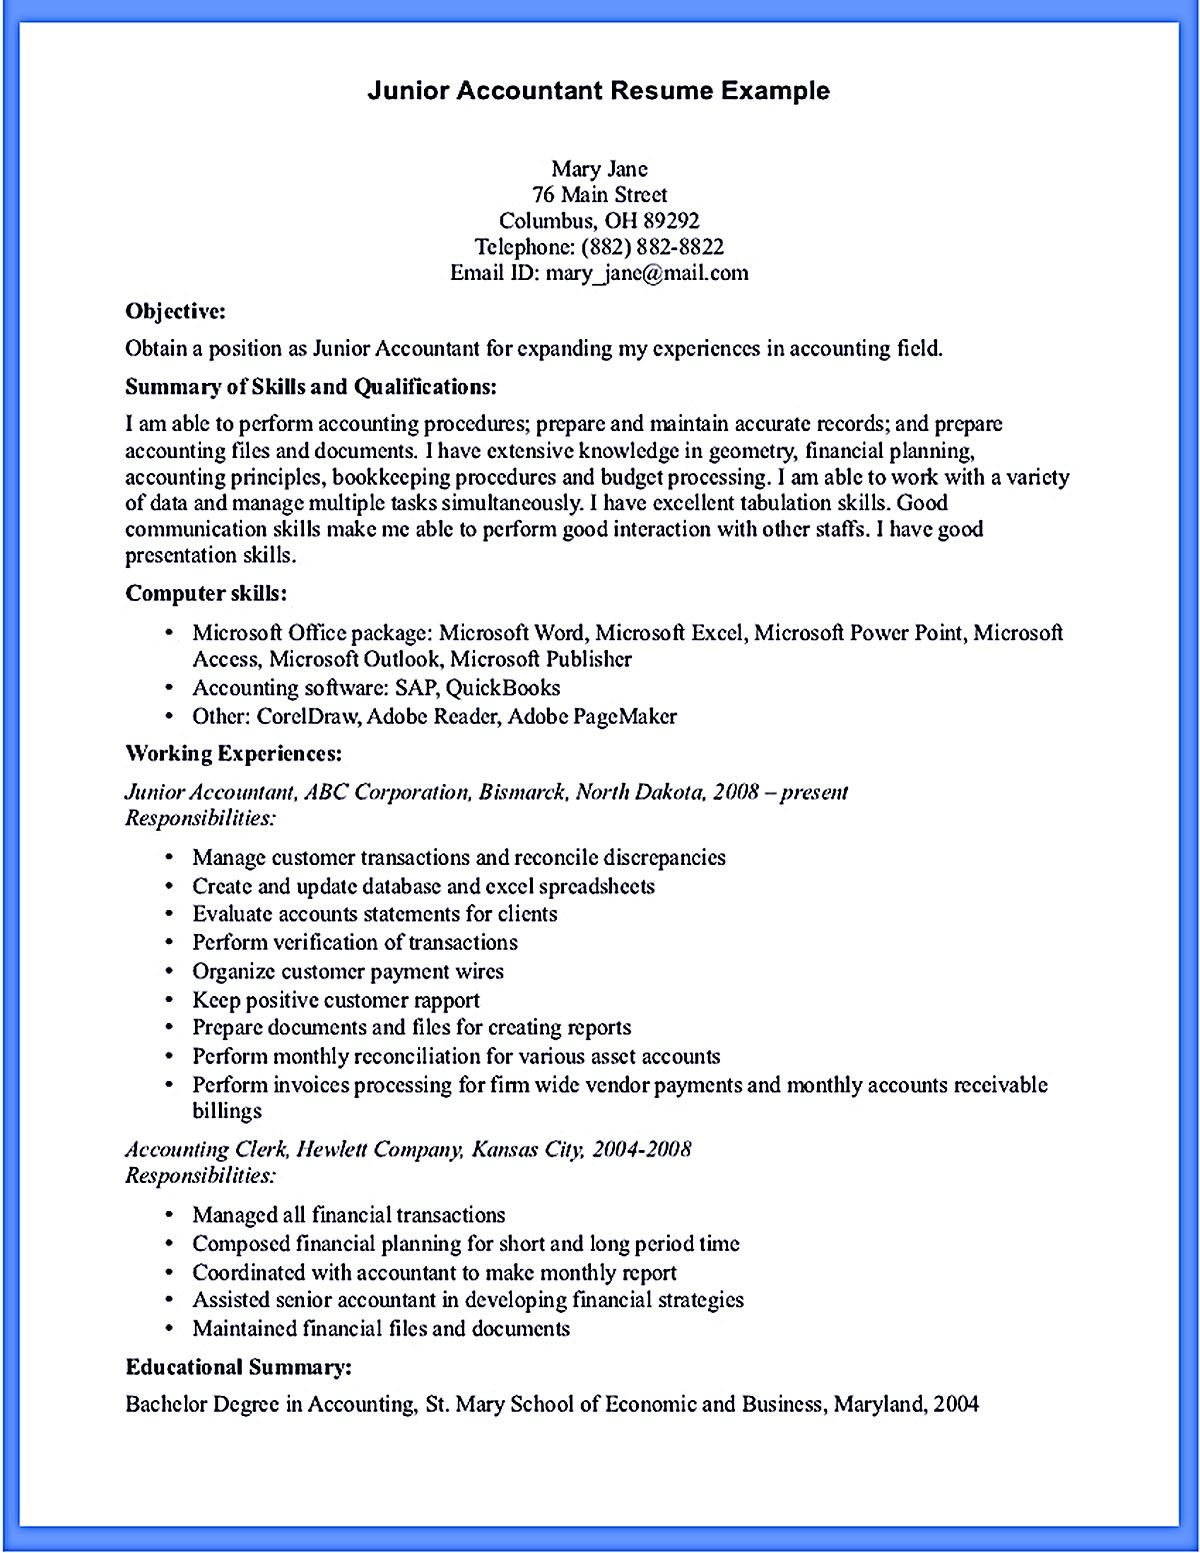 Outstanding Accountant Resume Sample For Junior And Senior Accountant Resume Resume Format In Word Resume Examples